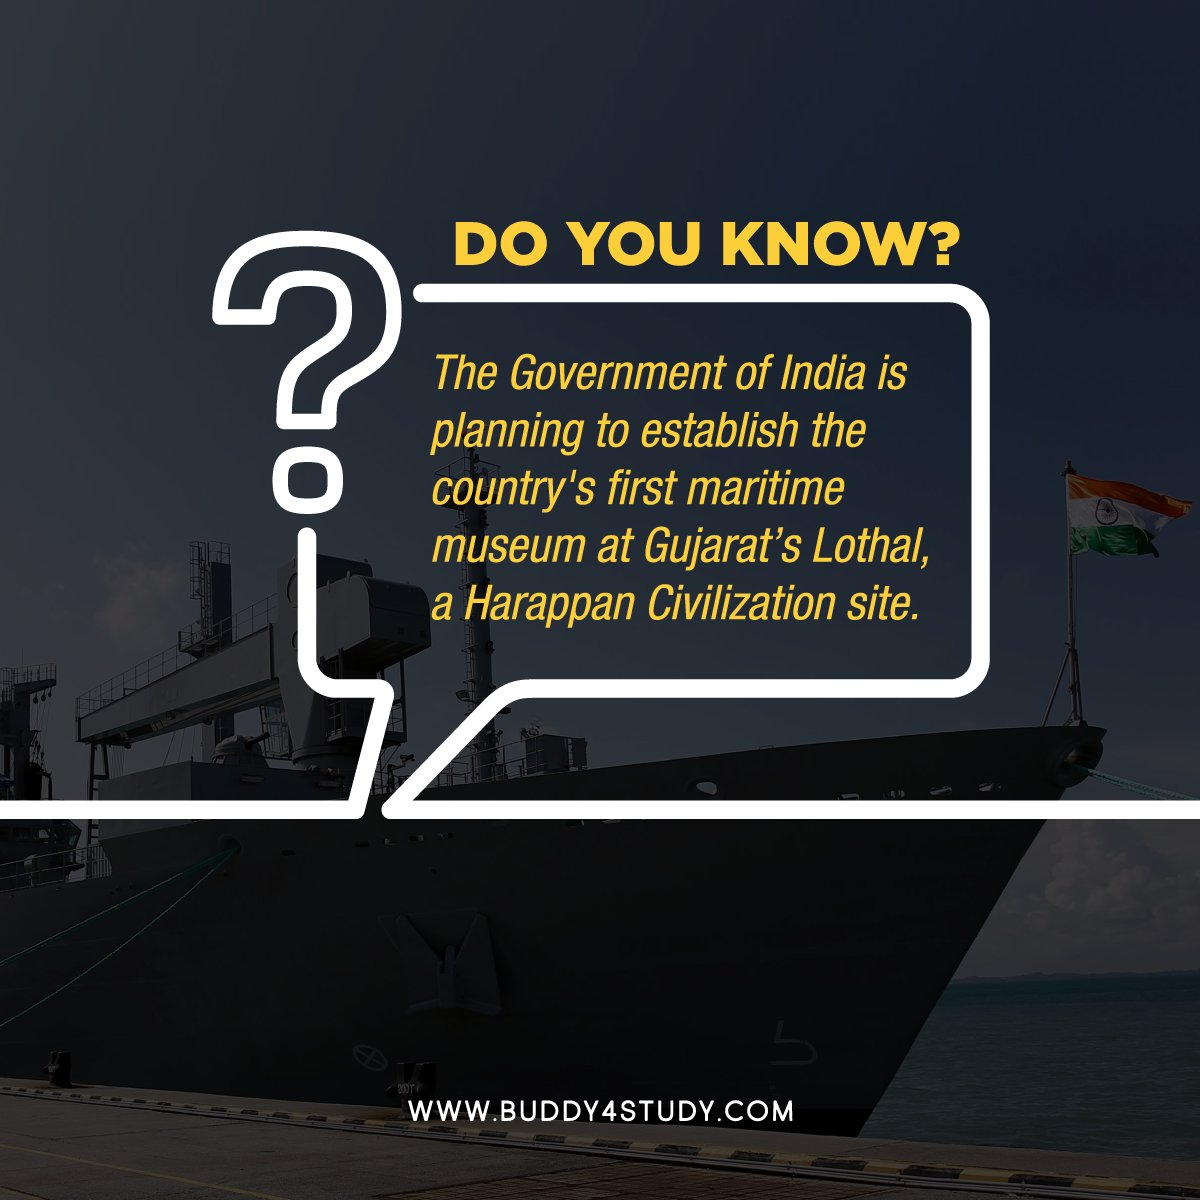 Apart from the museum, there will be a maritime theme park, intended to give visitors an immersive experience of India's maritime heritage through the ancient, medieval, colonial, and modern ages. #doyouknow pic.twitter.com/3hSiFYWZ7c